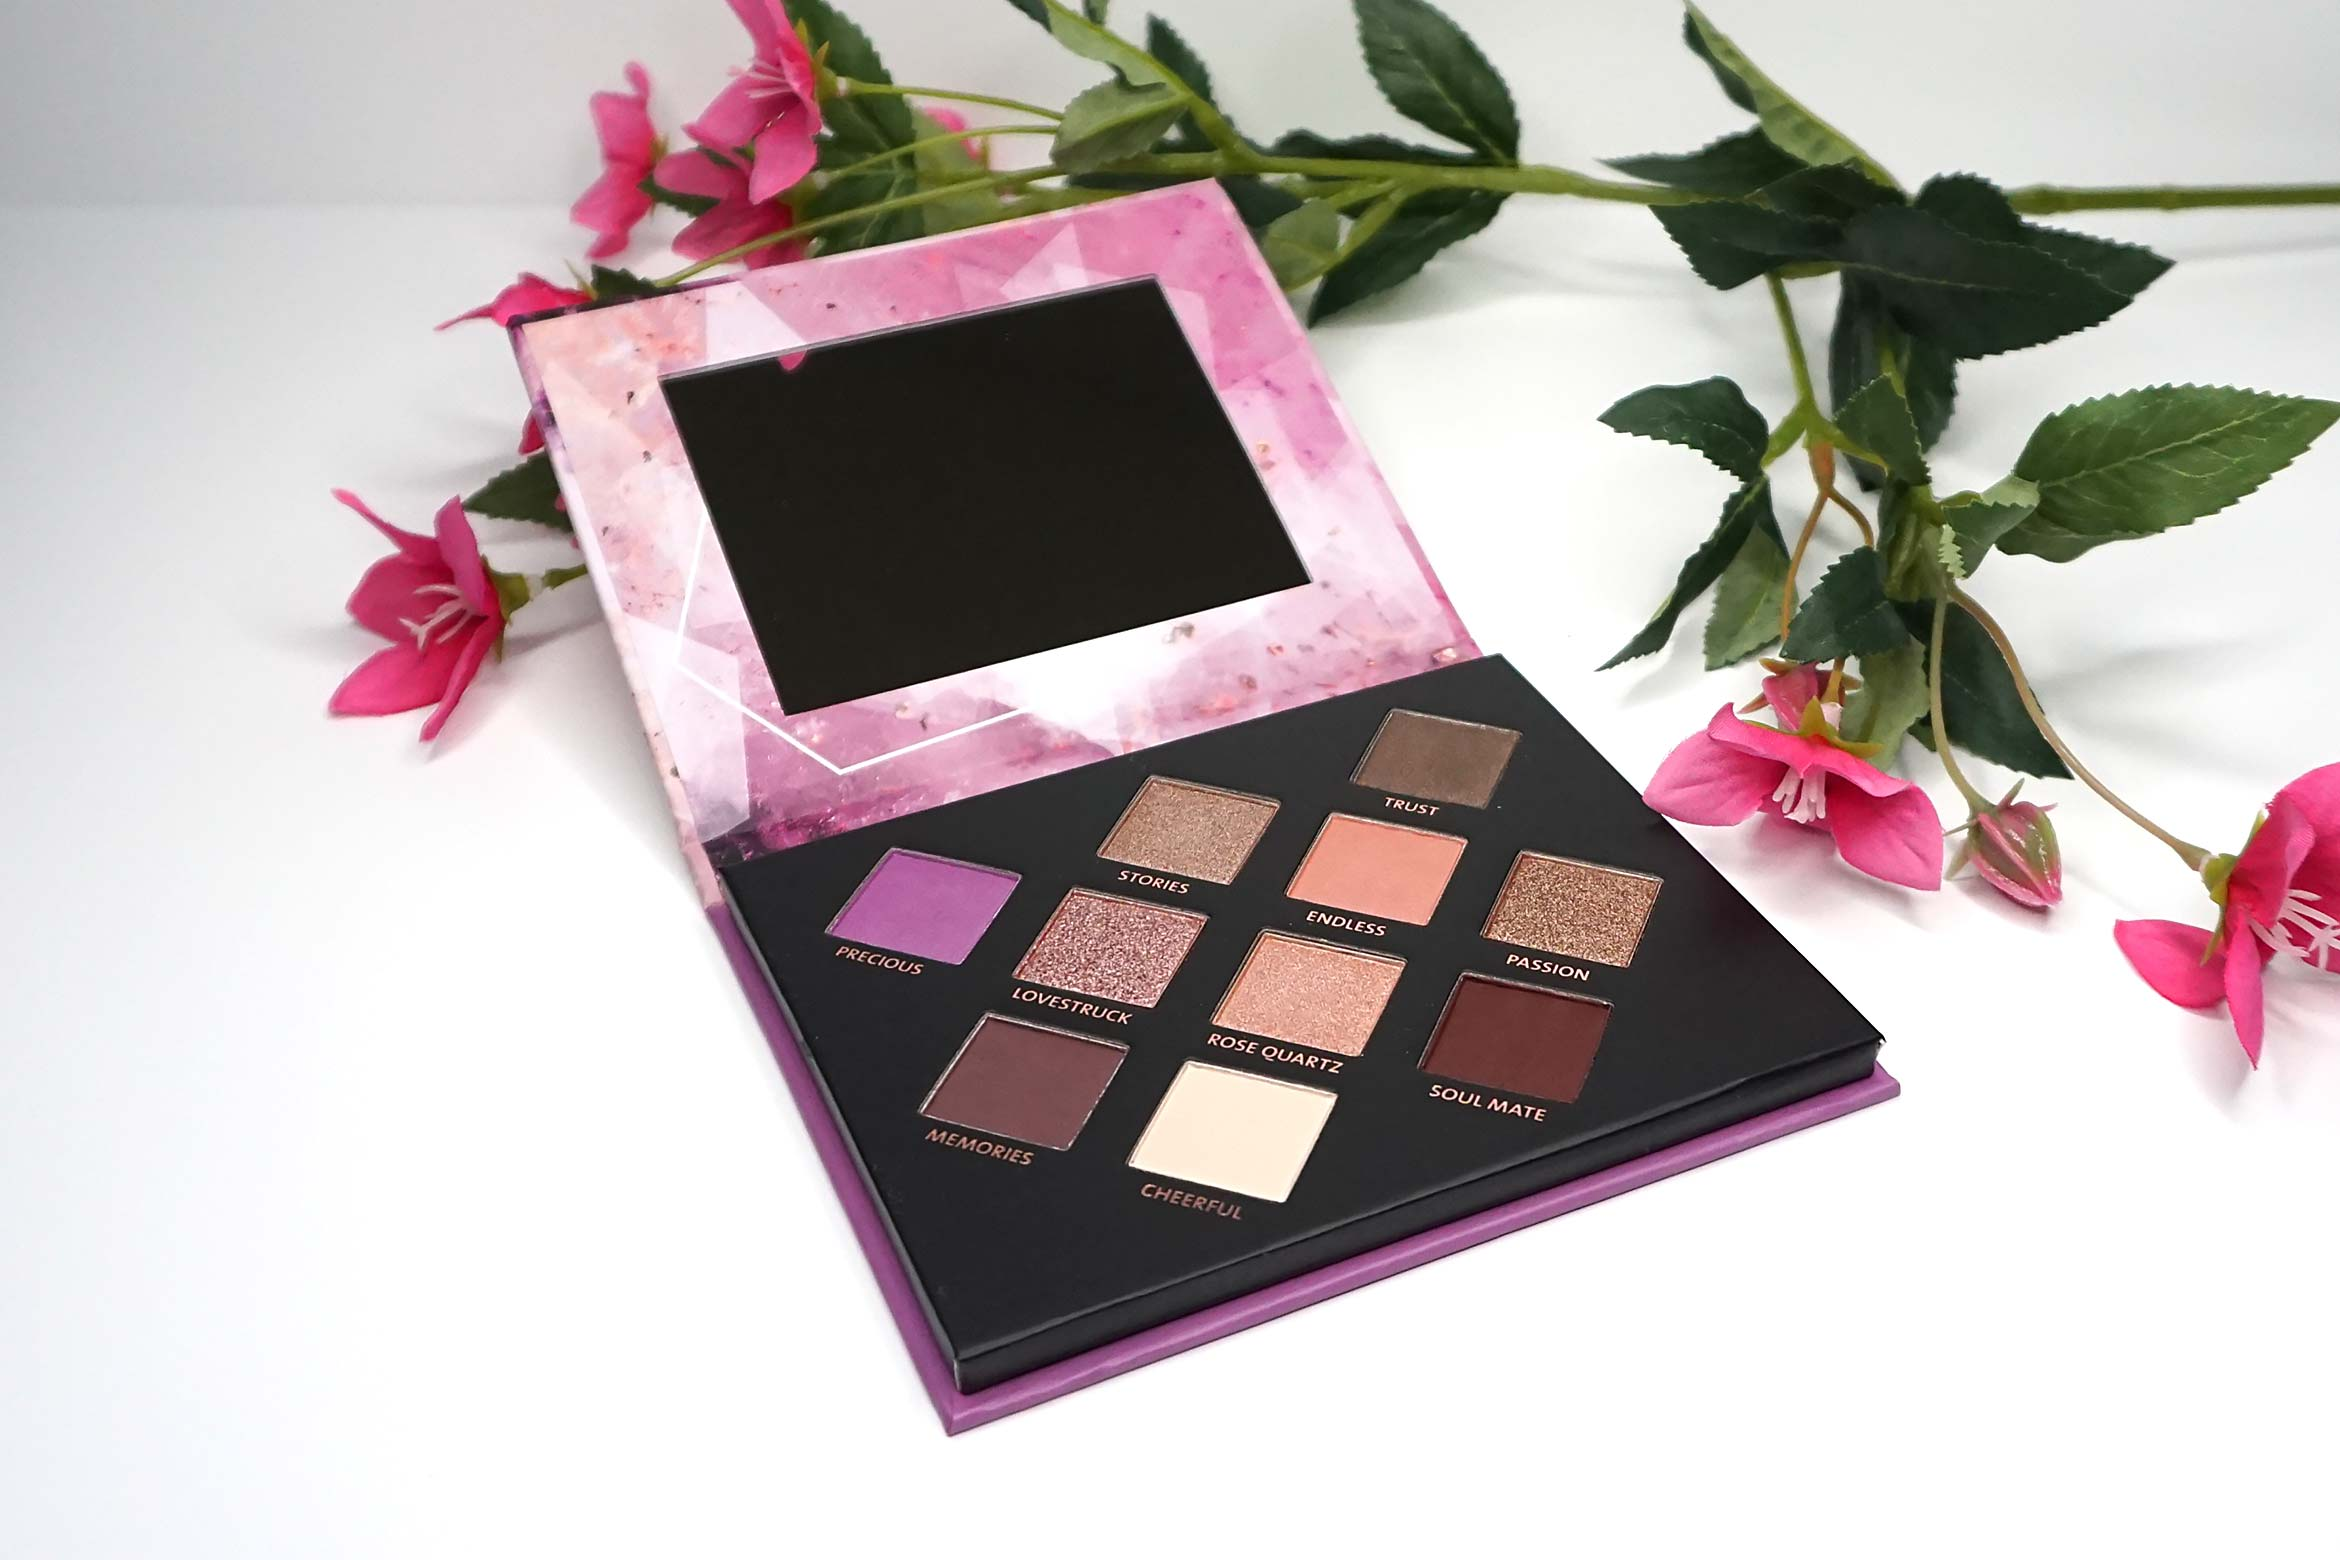 catrice-sister-of-my-soul-crystallized-eyeshadow-palette-review-2